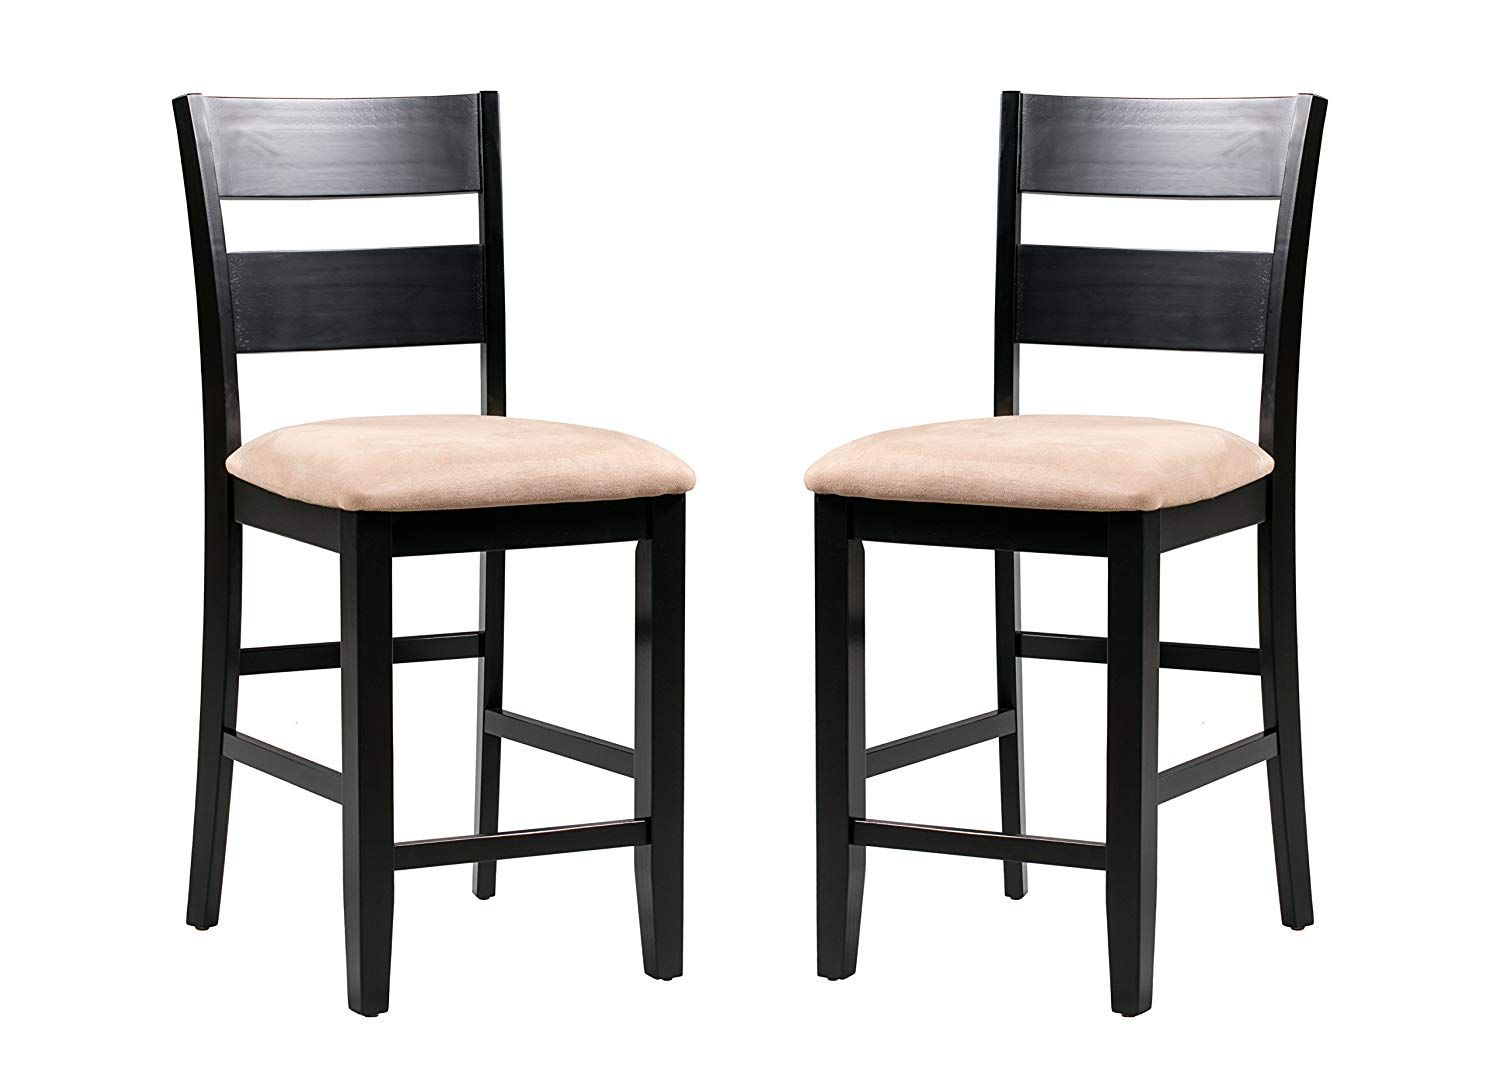 Trithi Furniture Fullerton Asian Solid Wood Black Counter Height With Upholstered Seat Chair Furniture Luxury Home Furniture Black Counters